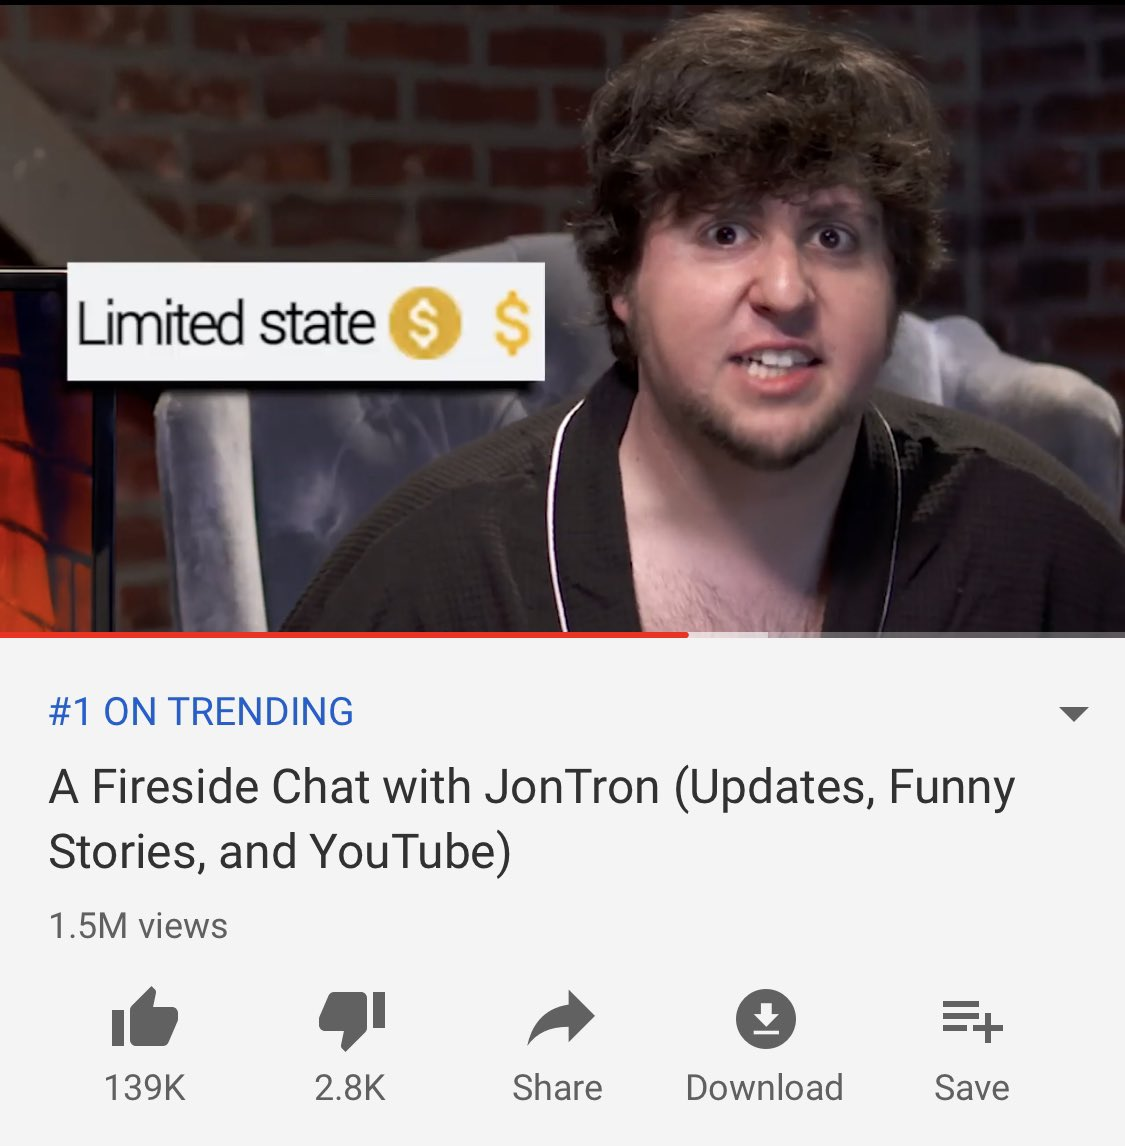 Jontron On Twitter Wow 1 On Trending We Broke The System Boys Jon jontron jafari is an accredited internet phenom who has famously done many video game reviews including daikatana and bubsy. jontron on twitter wow 1 on